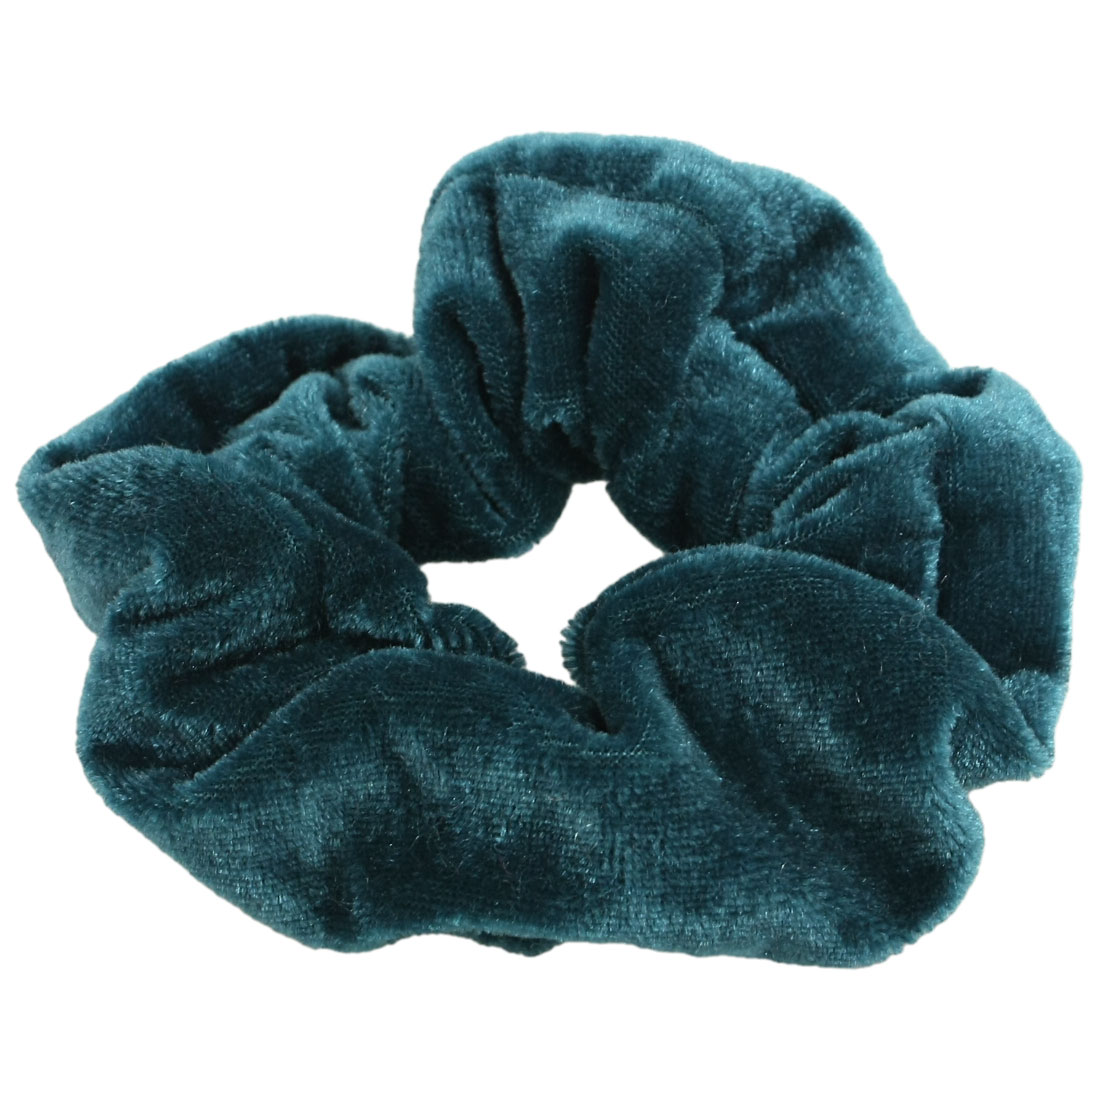 Teal Blue Velvet Elastic Hair Tie Band Ponytail Holder for Women